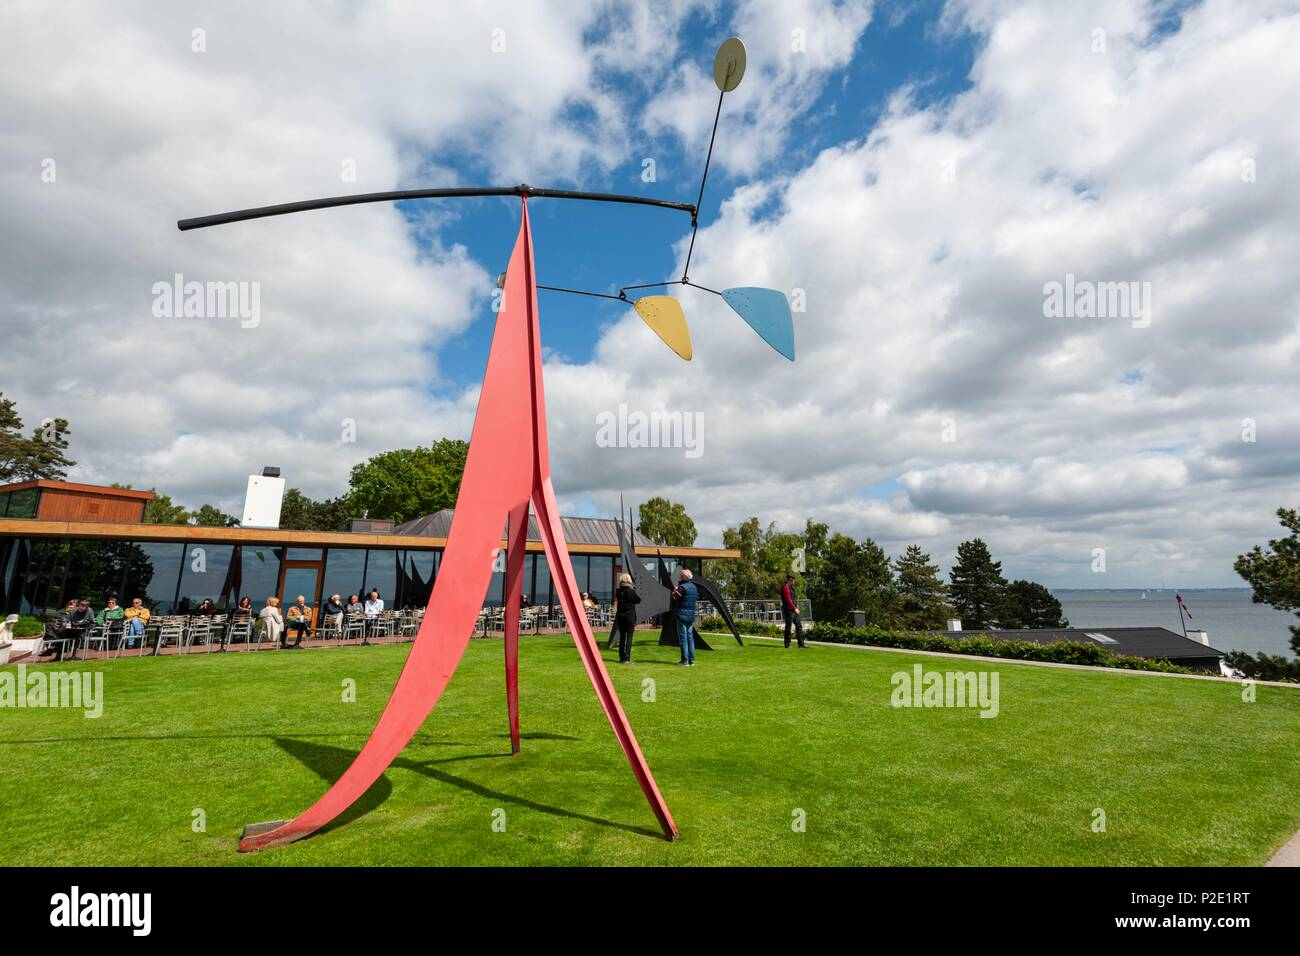 Denmark, Seeland, Humlebaek, Louisiana Museum of Modern Art designed by architects Jørgen Bo and Wilhlem Wohlert and inaugurated in 1959, sculpture of Alexander Calder with the restaurant behind - Stock Image